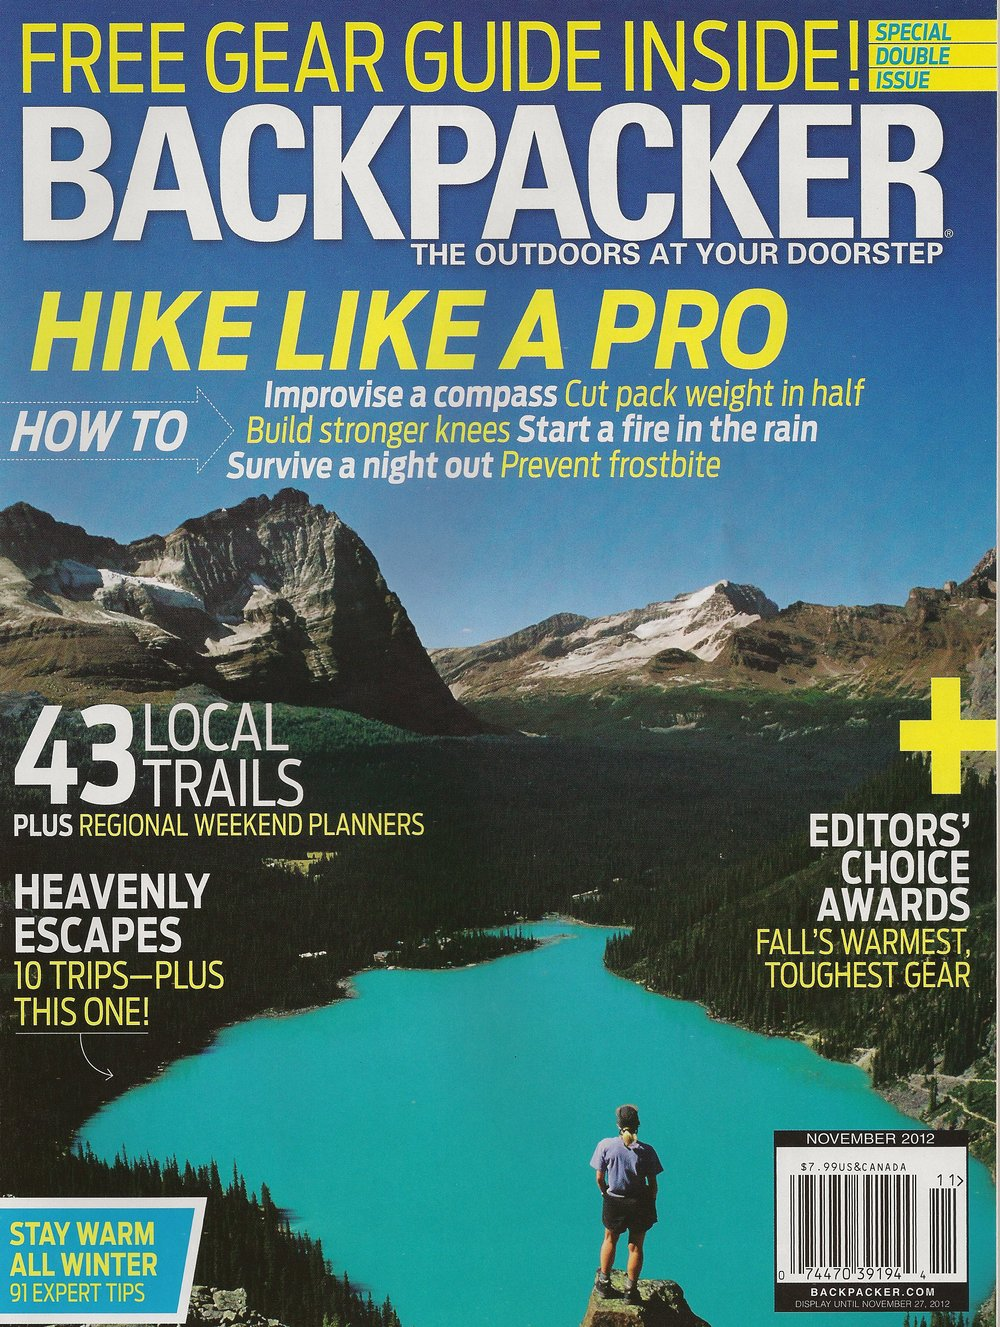 Land Between the Lakes BACKPACKER magazine  - August 2012